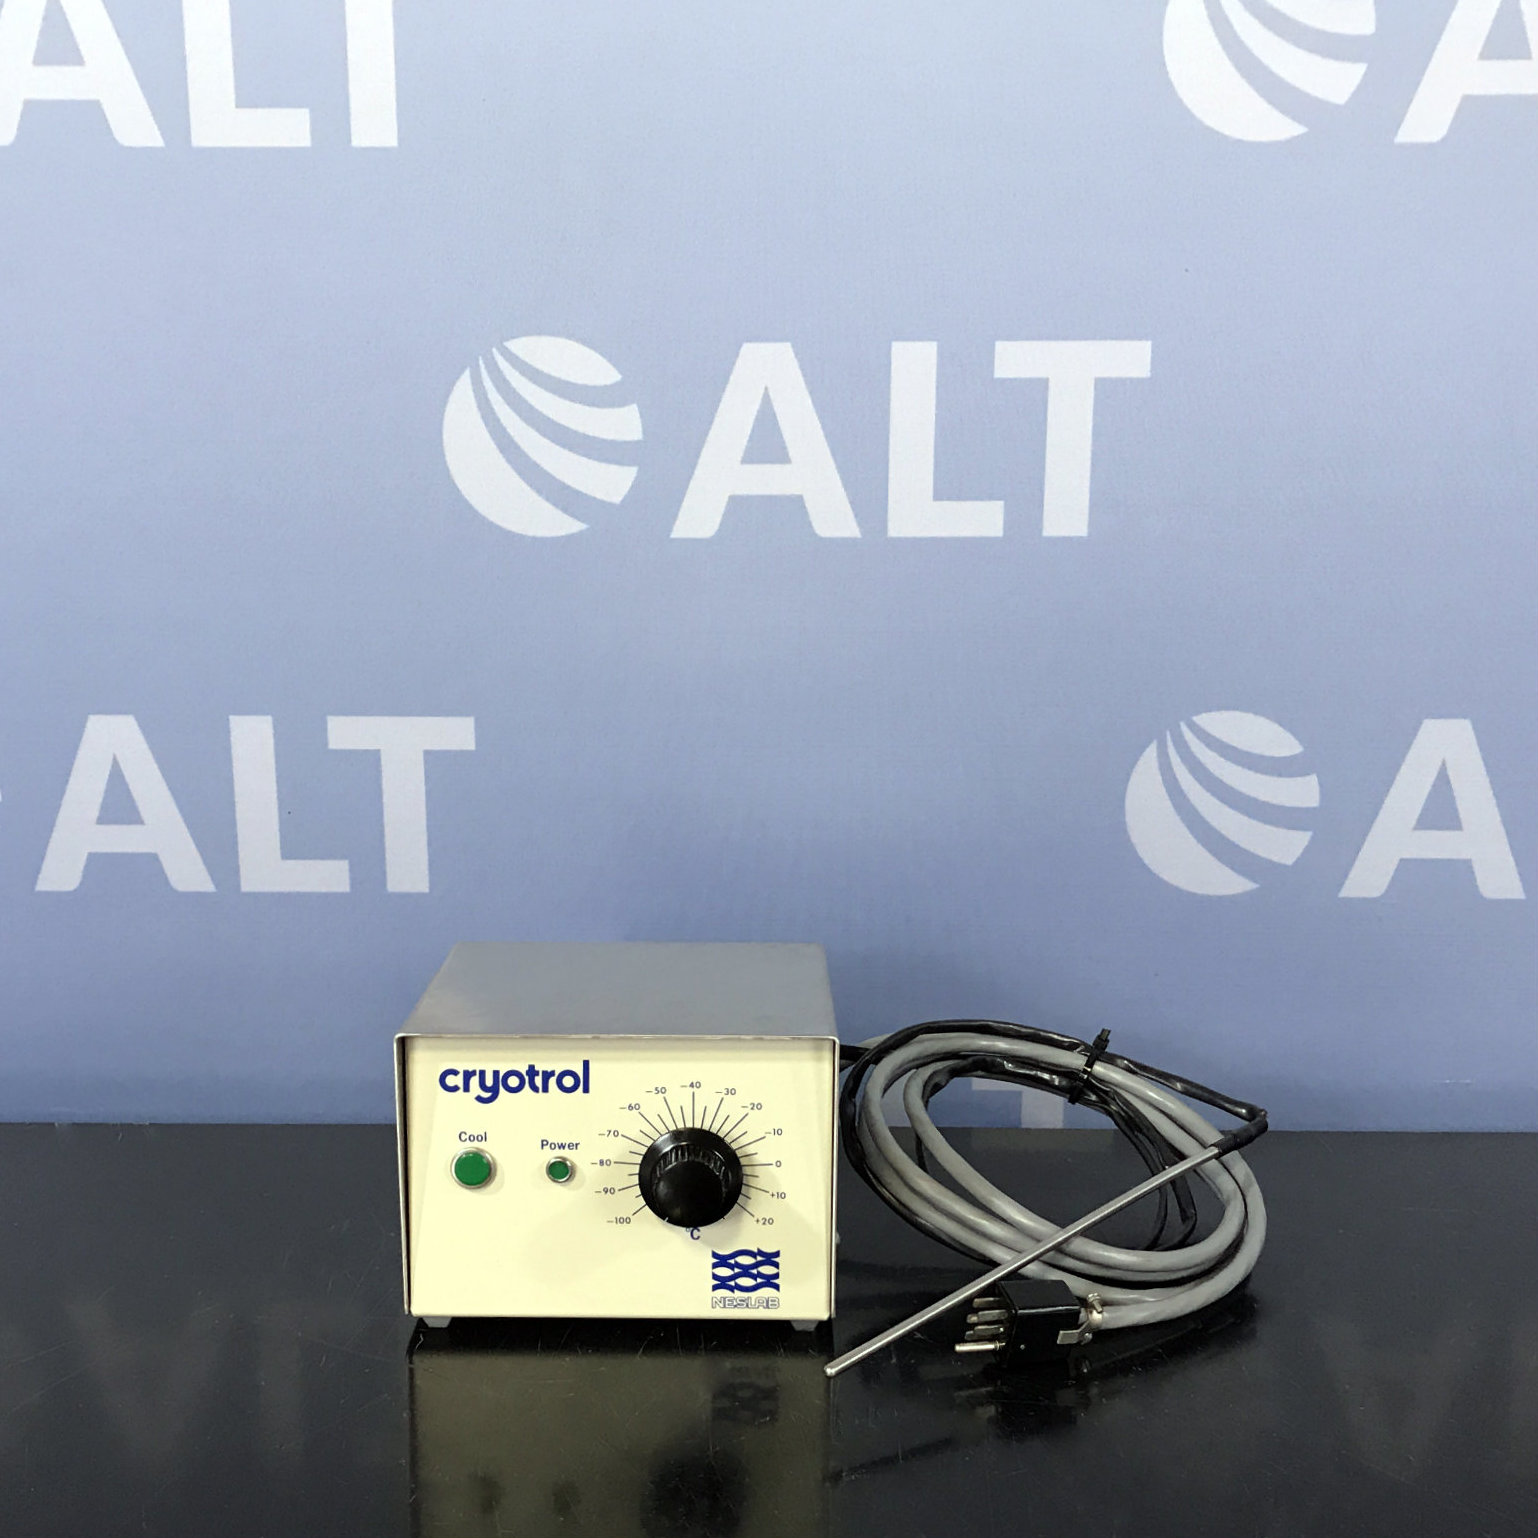 Neslab Cryotrol Temperature Controller P/N 431003000000 with Temperature Probe Image